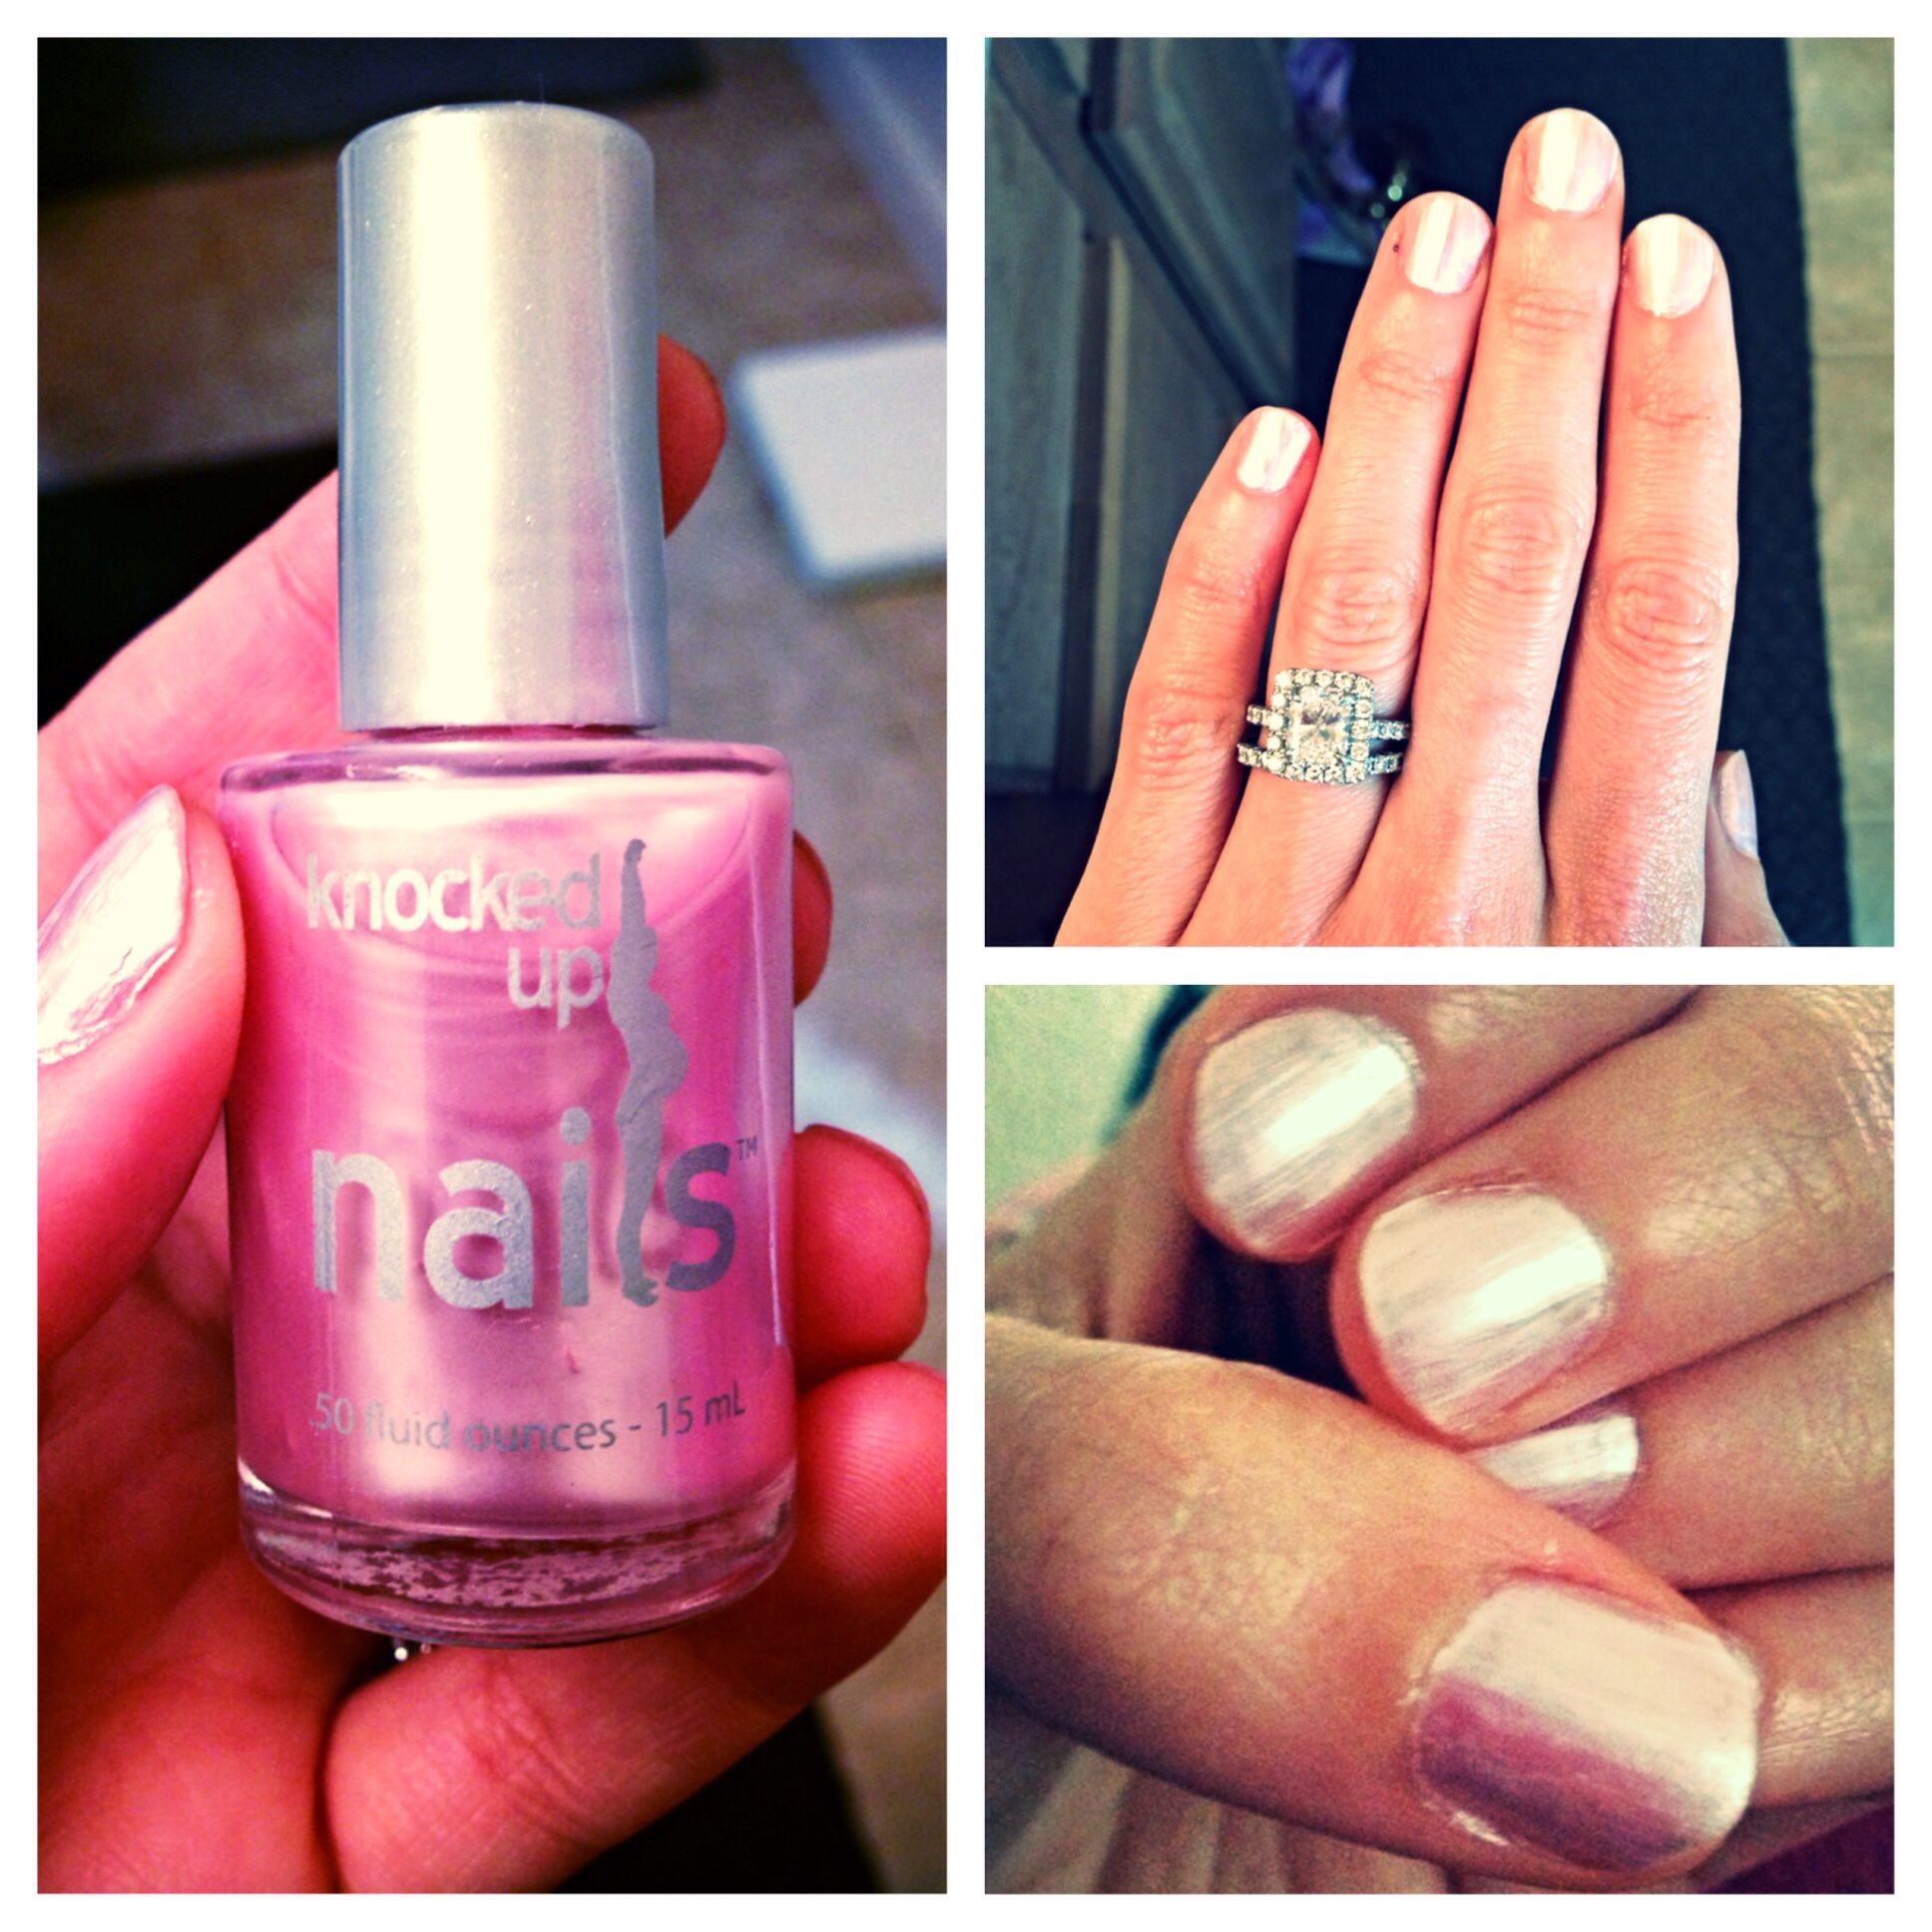 Nail polish designed for pregnant women, uploaded by @noragcaballero ...